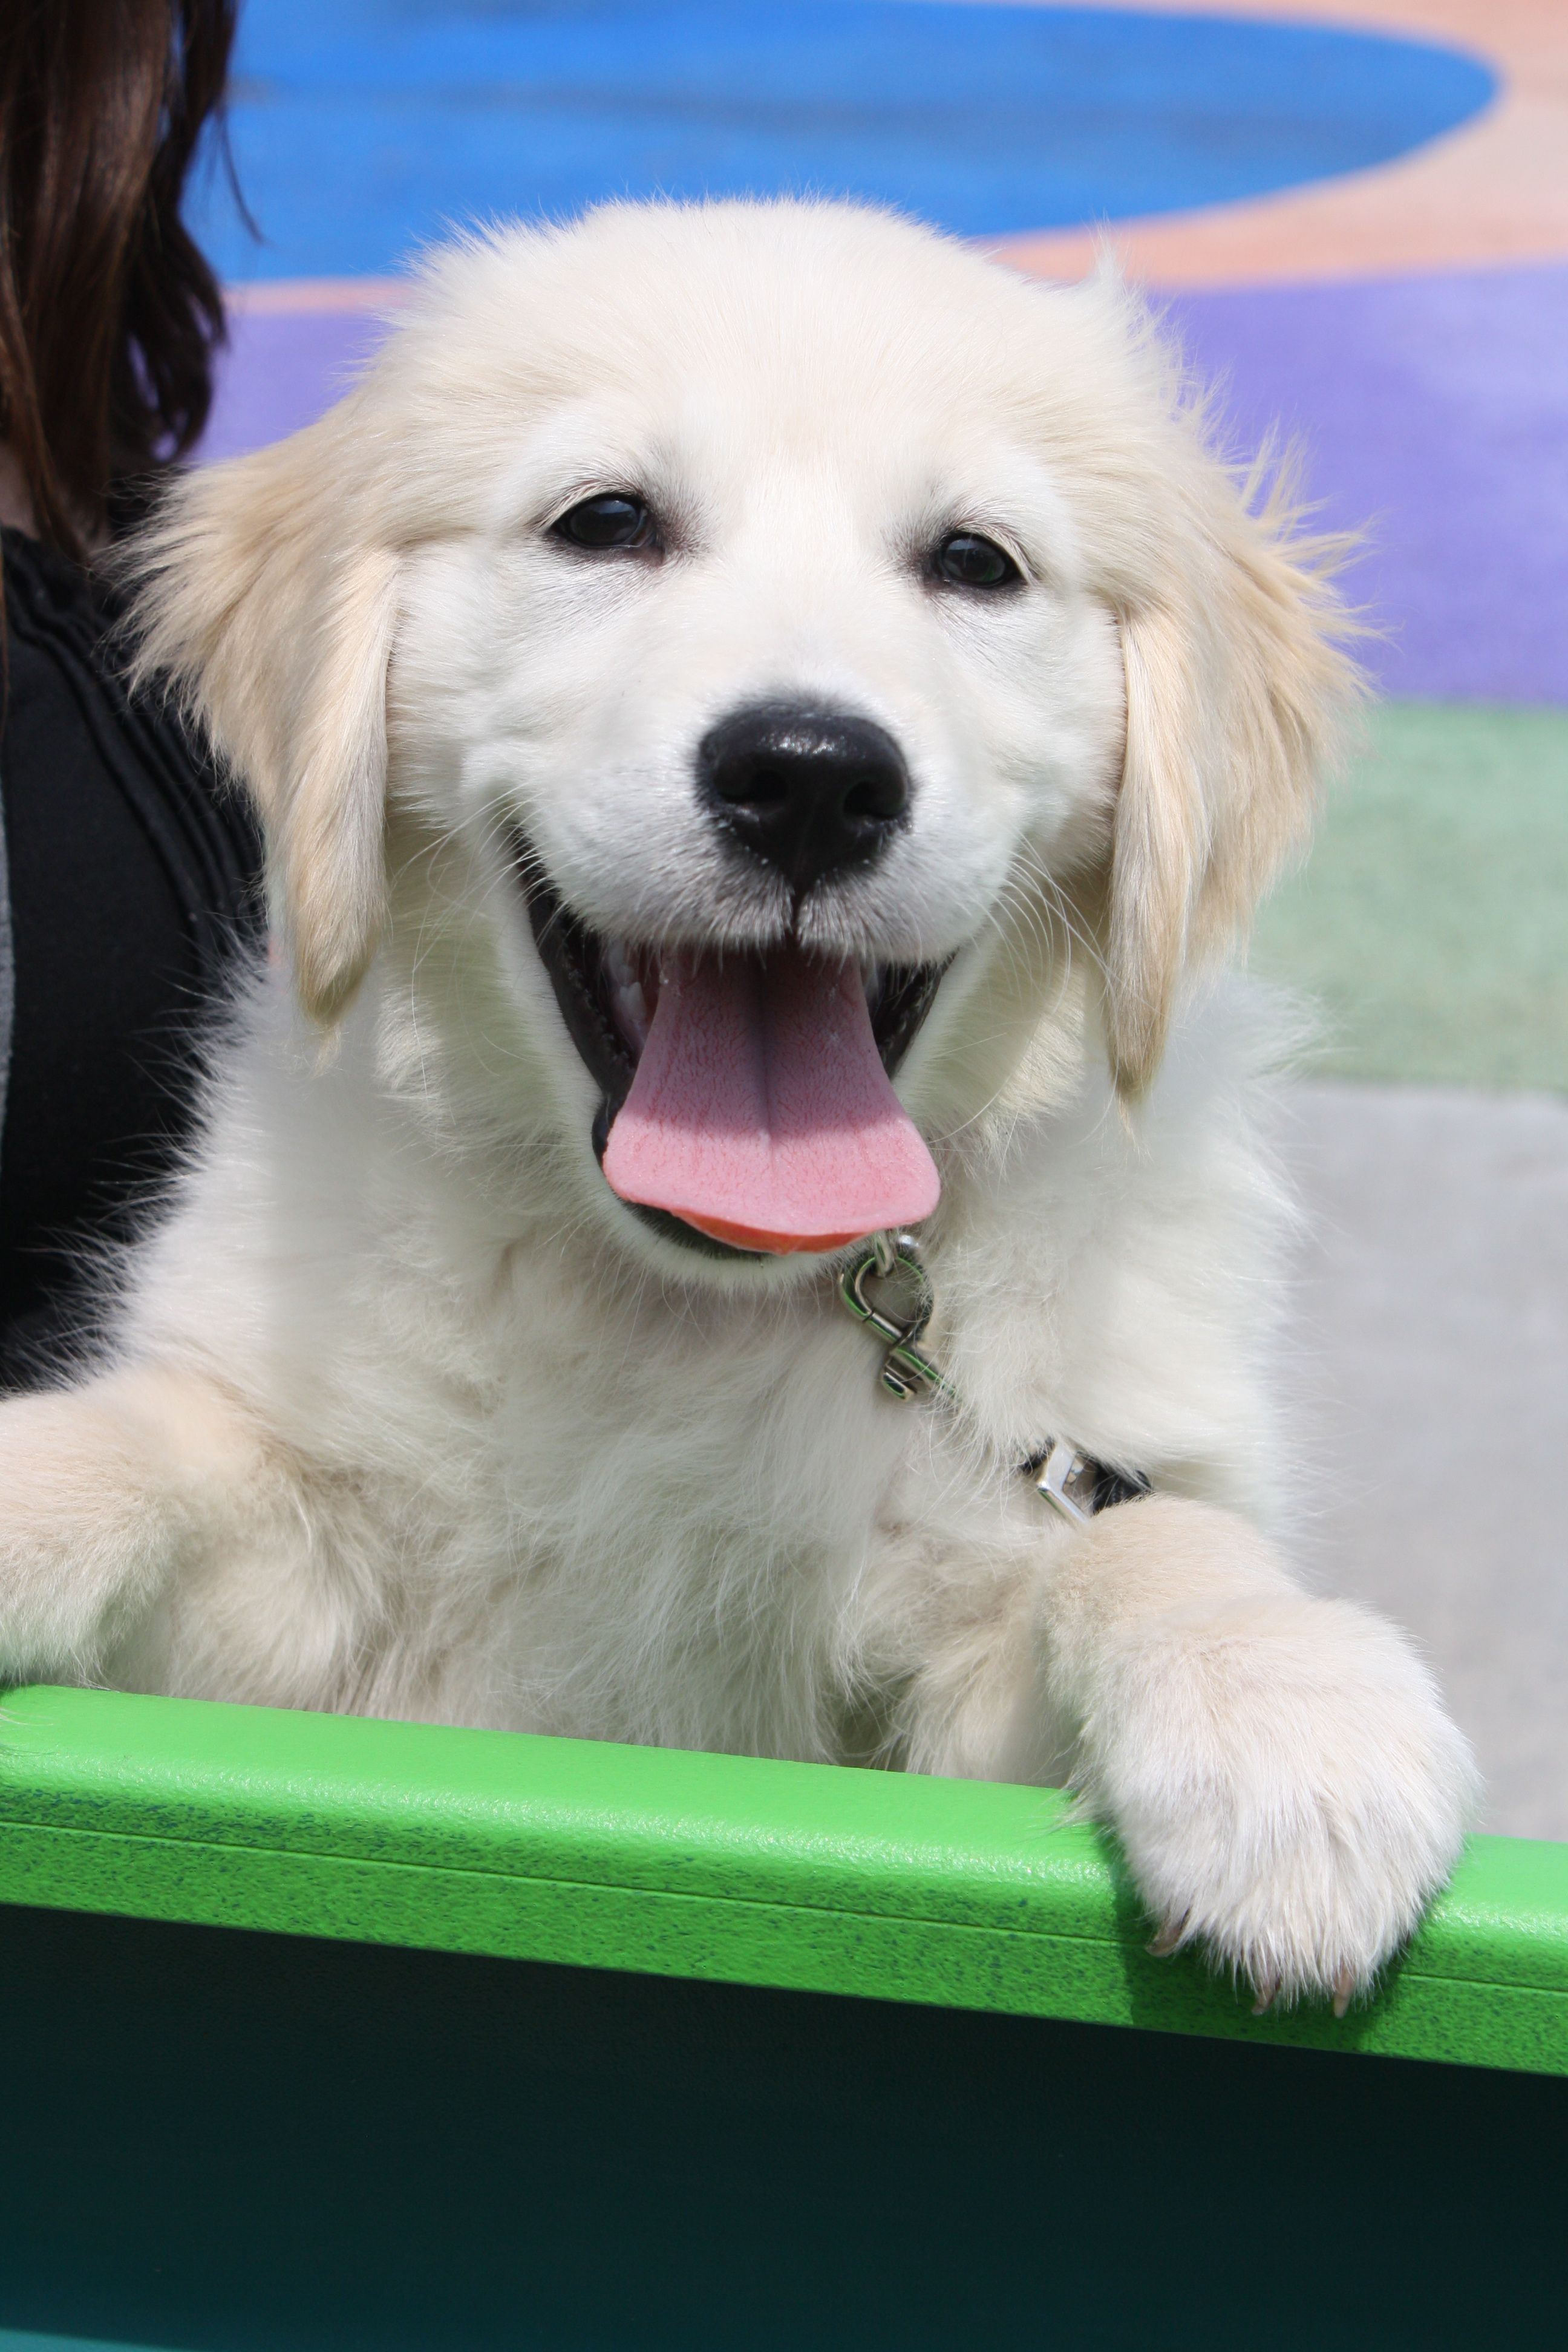 Puppy Smiles And So Do I When I See This Face White Golden